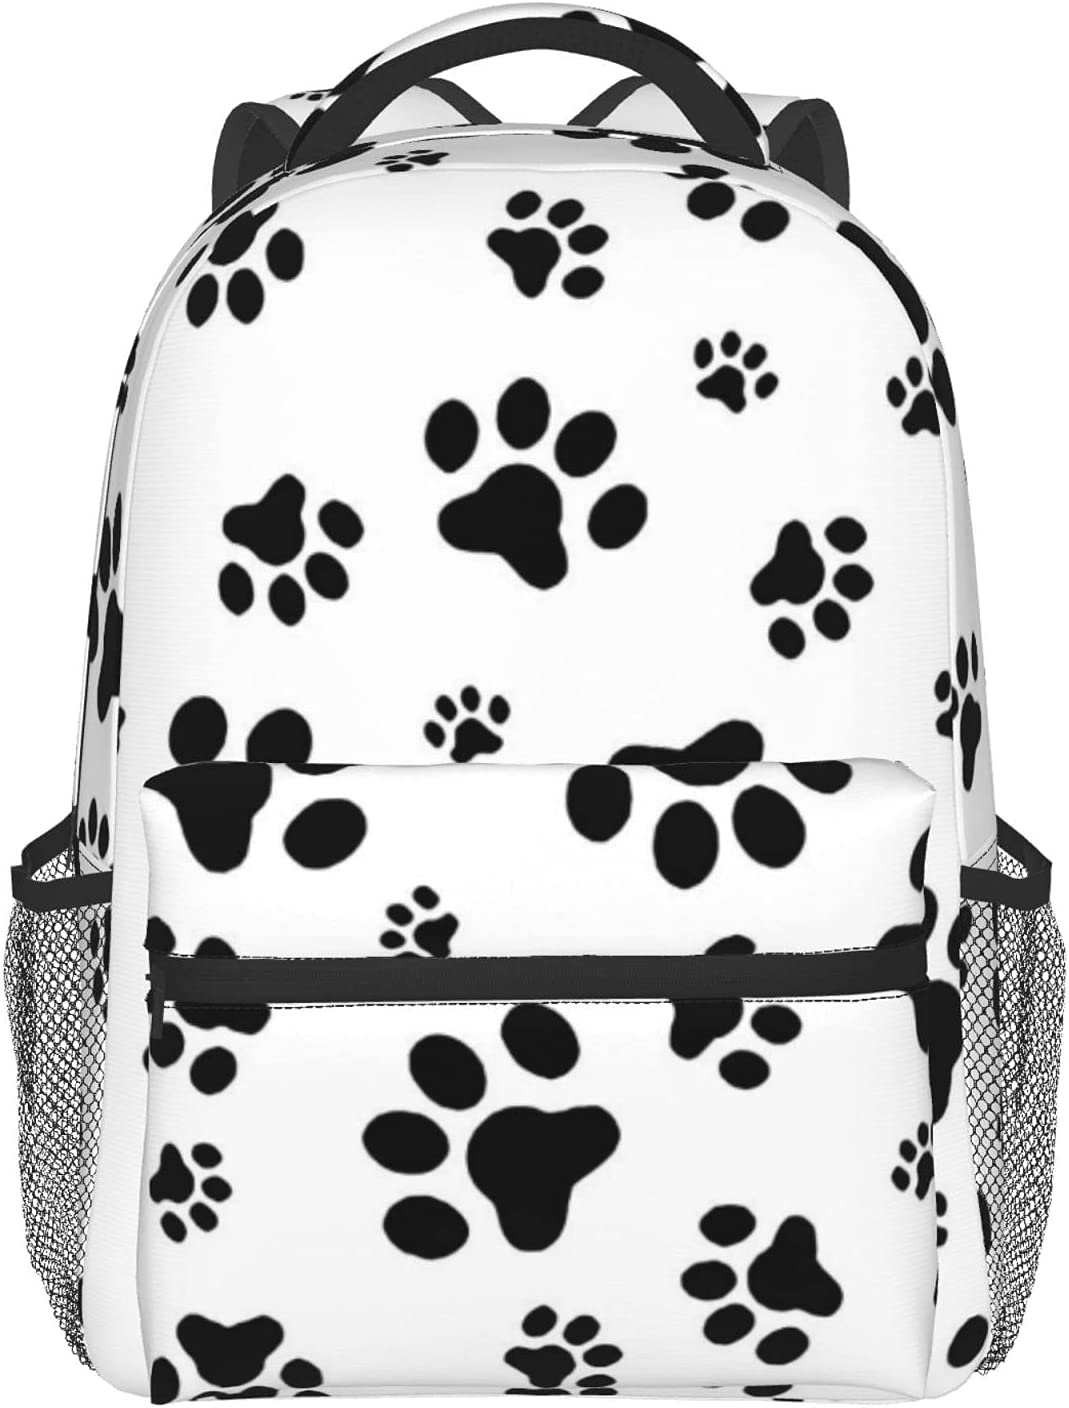 Dog's footprints Full Max 41% OFF Print Schoolbag To Durable 100% 5 popular polyester